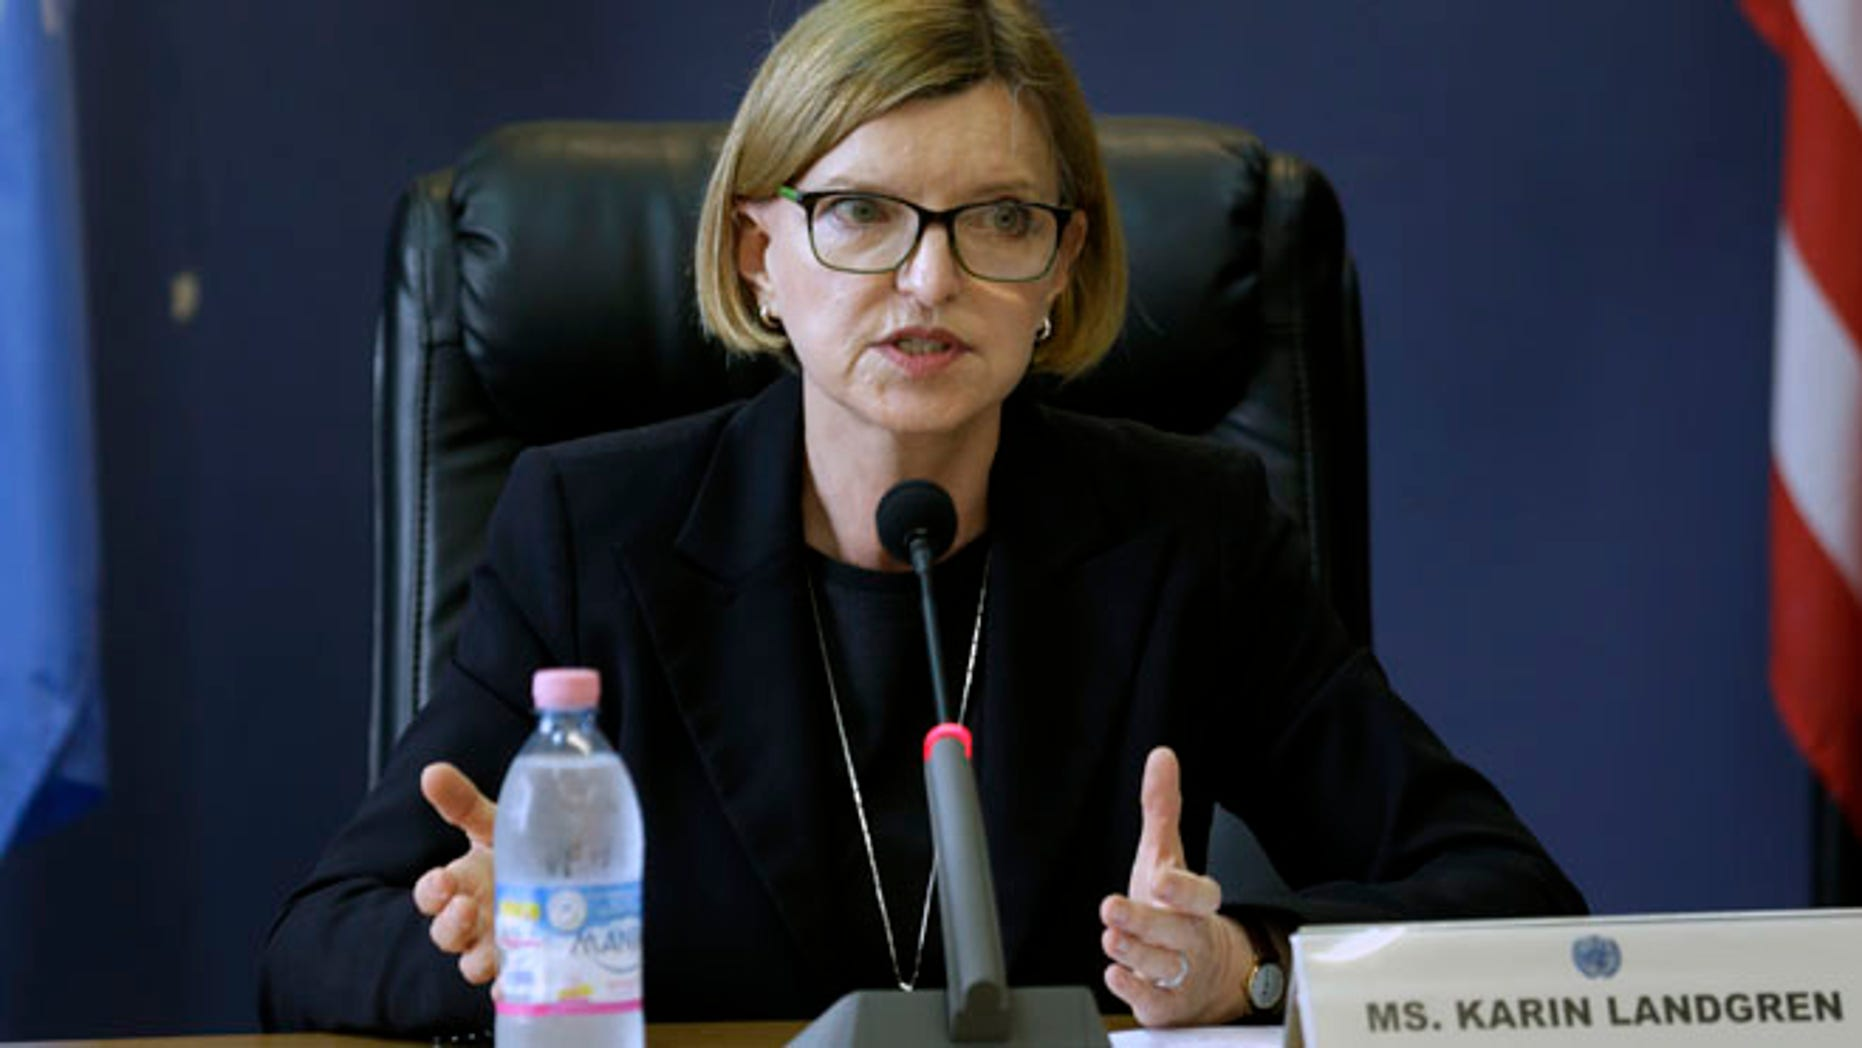 Oct. 1, 2014: Karin Landgren, Special Representative of the Secretary-General (SRSG) to the United Nations Mission in Liberia (UNMIL), addresses a news conference in Monrovia, Liberia